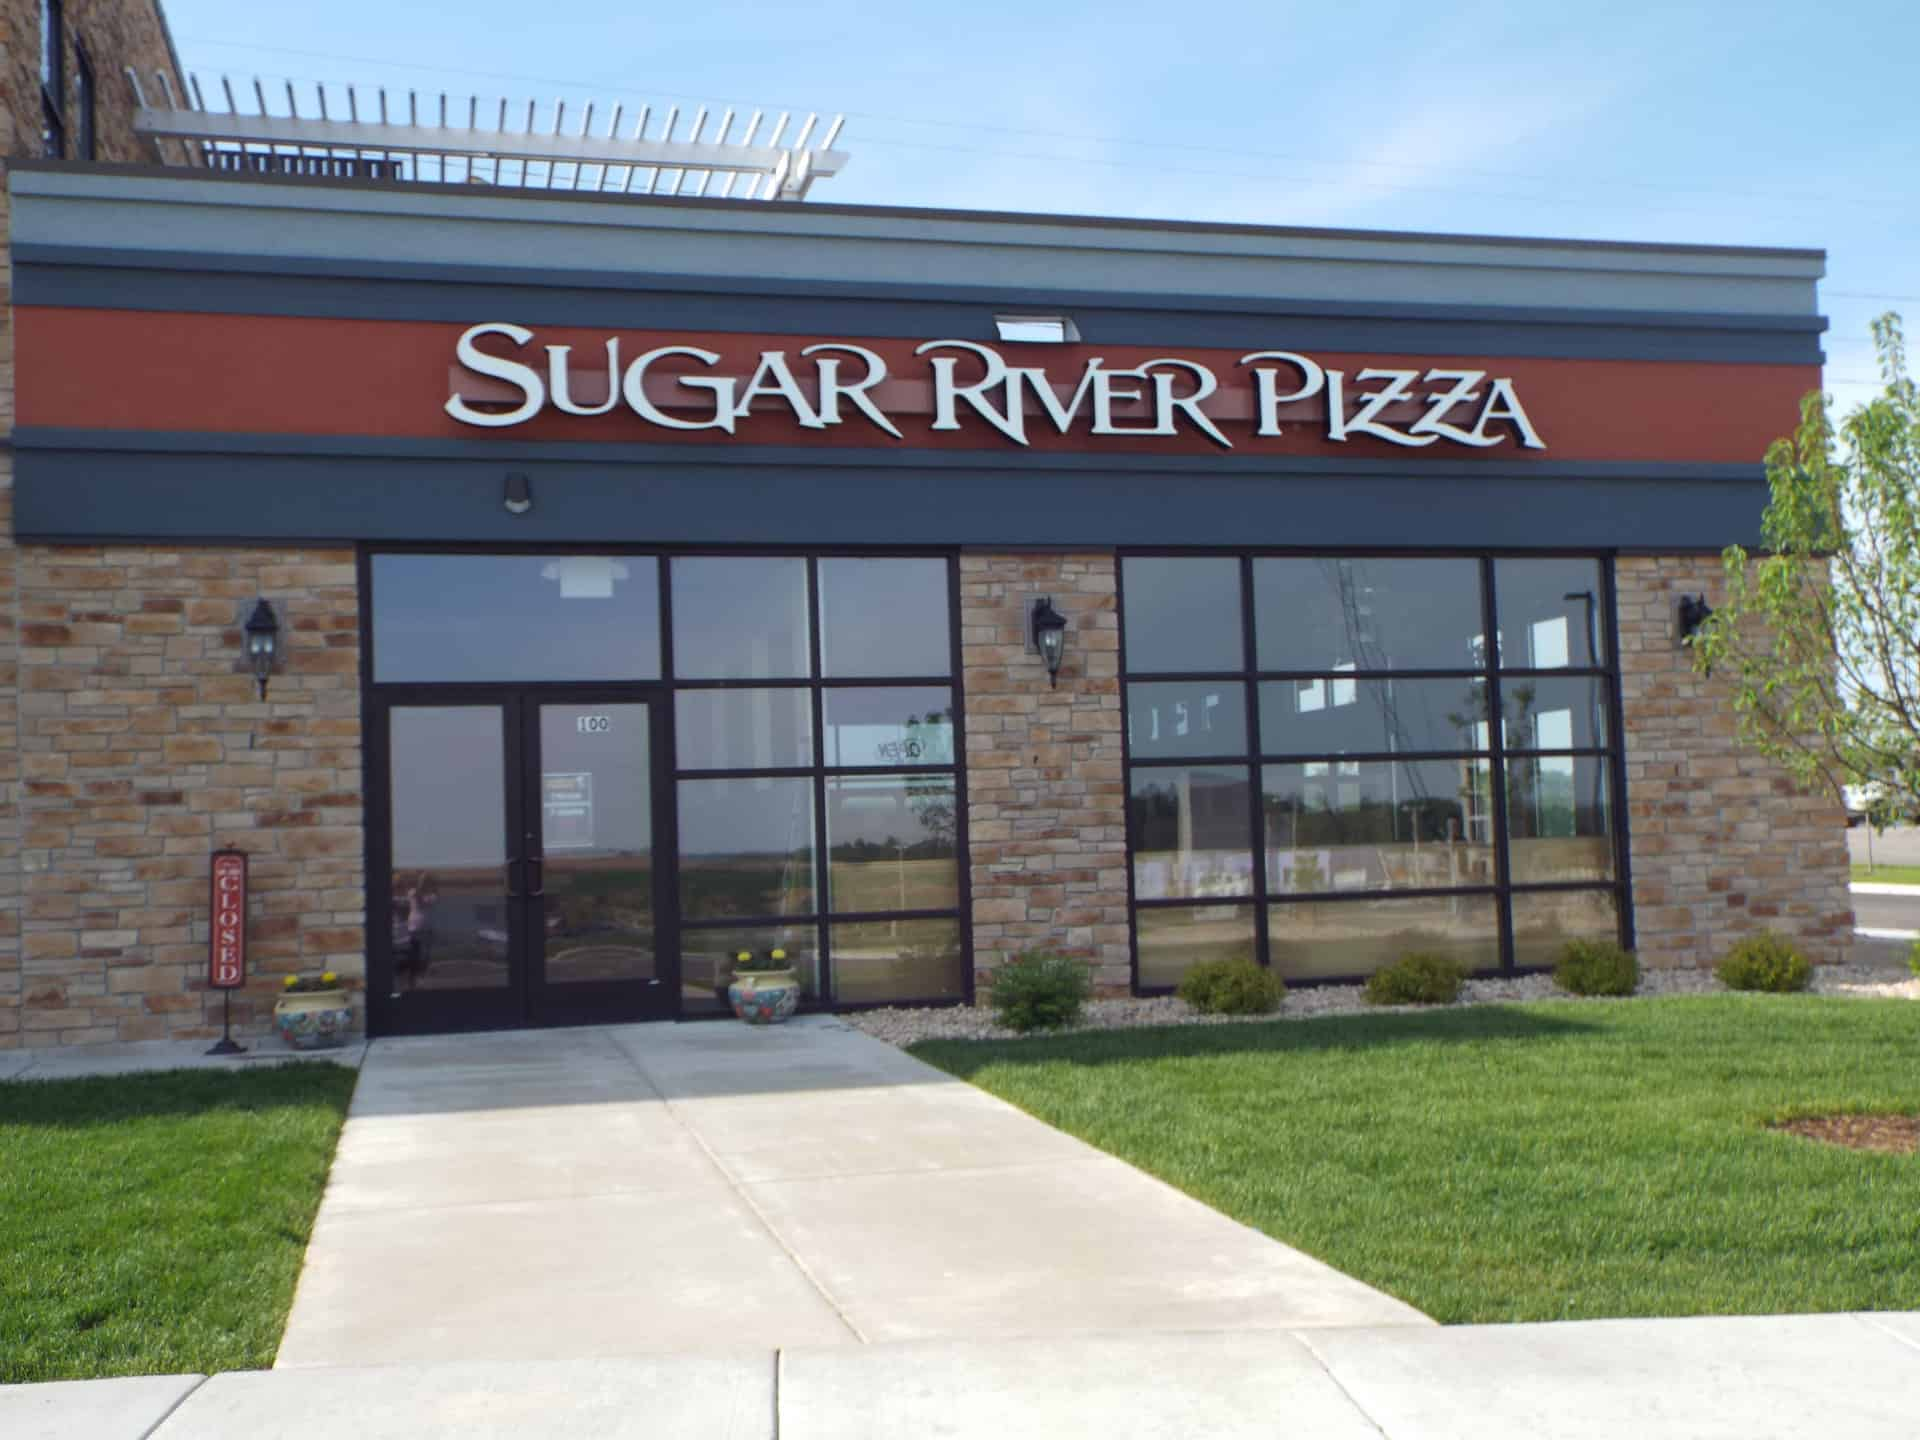 Sugar River Pizza Entrance